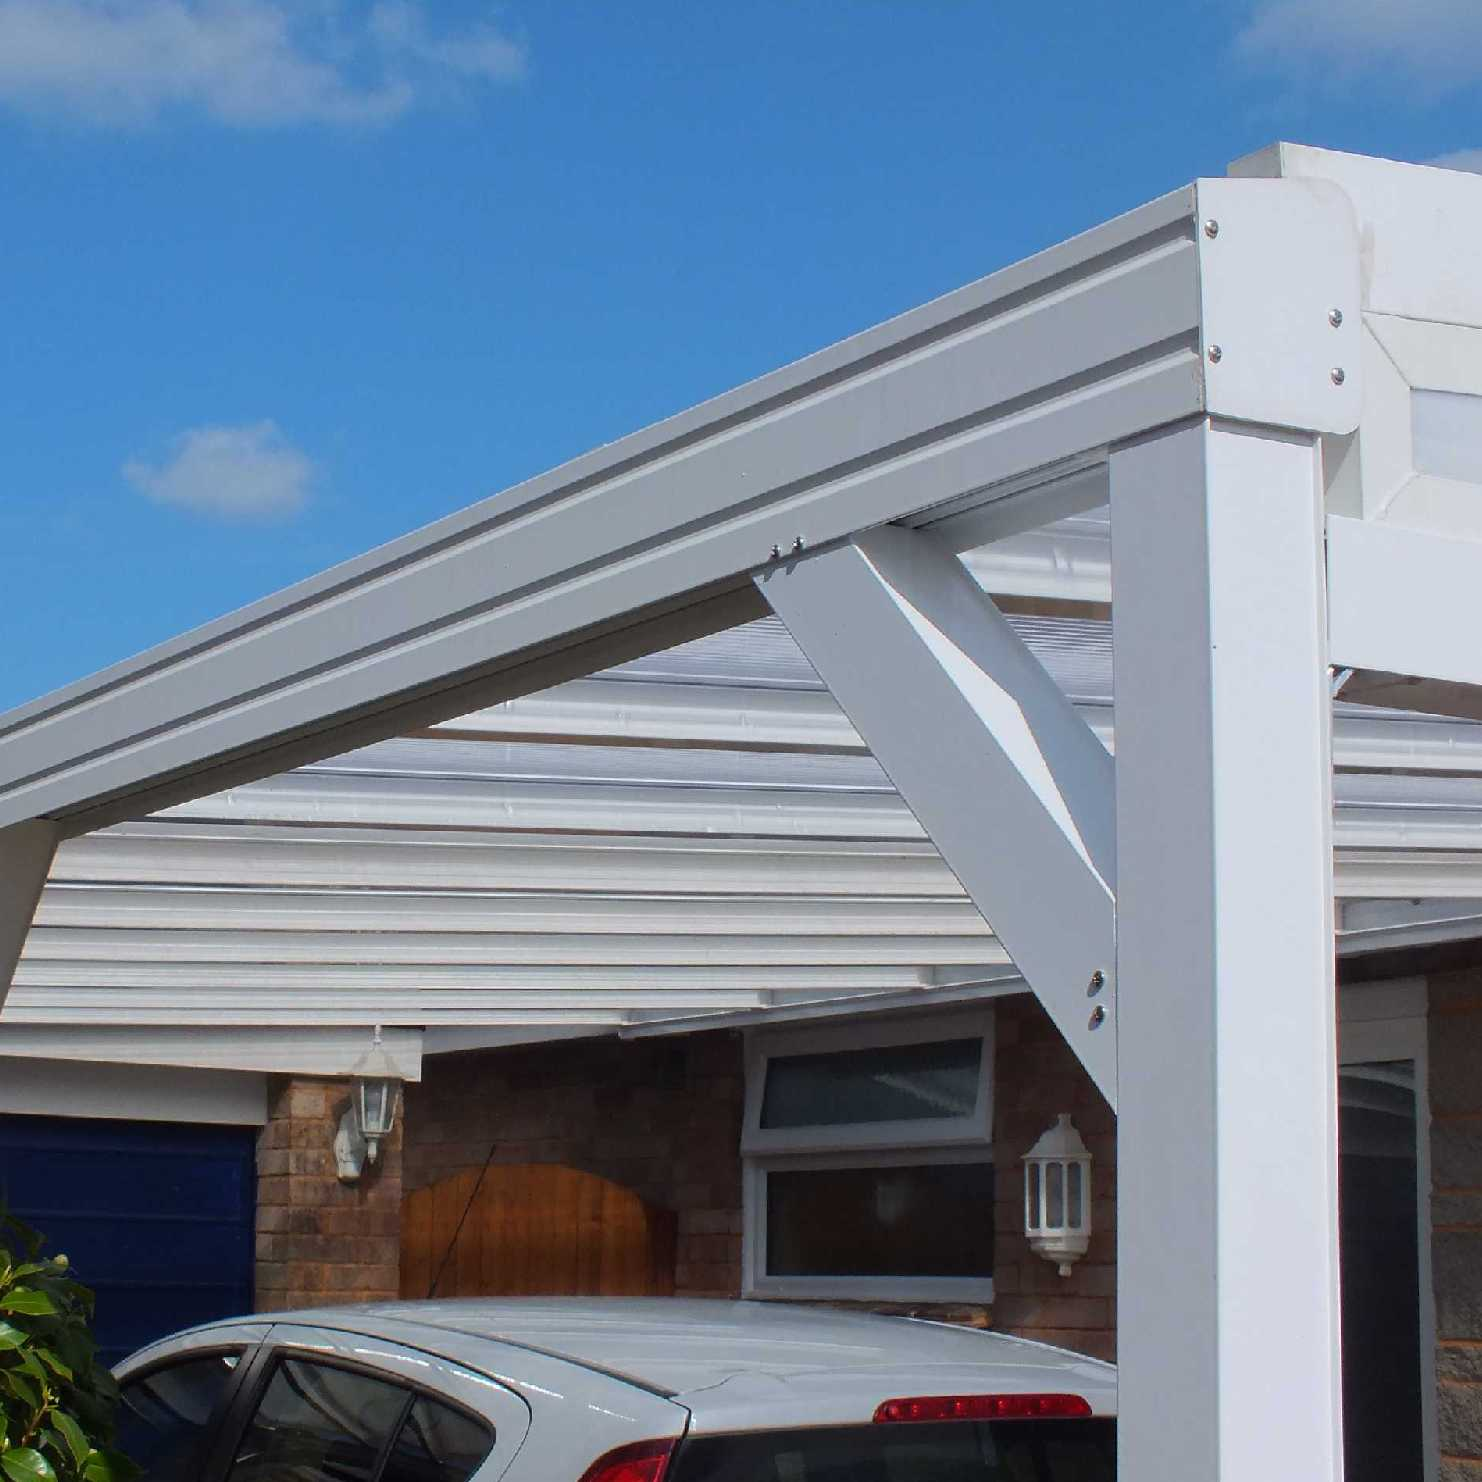 Great deals on Omega Smart Lean-To Canopy with 16mm Polycarbonate Glazing - 3.5m (W) x 4.0m (P), (3) Supporting Posts